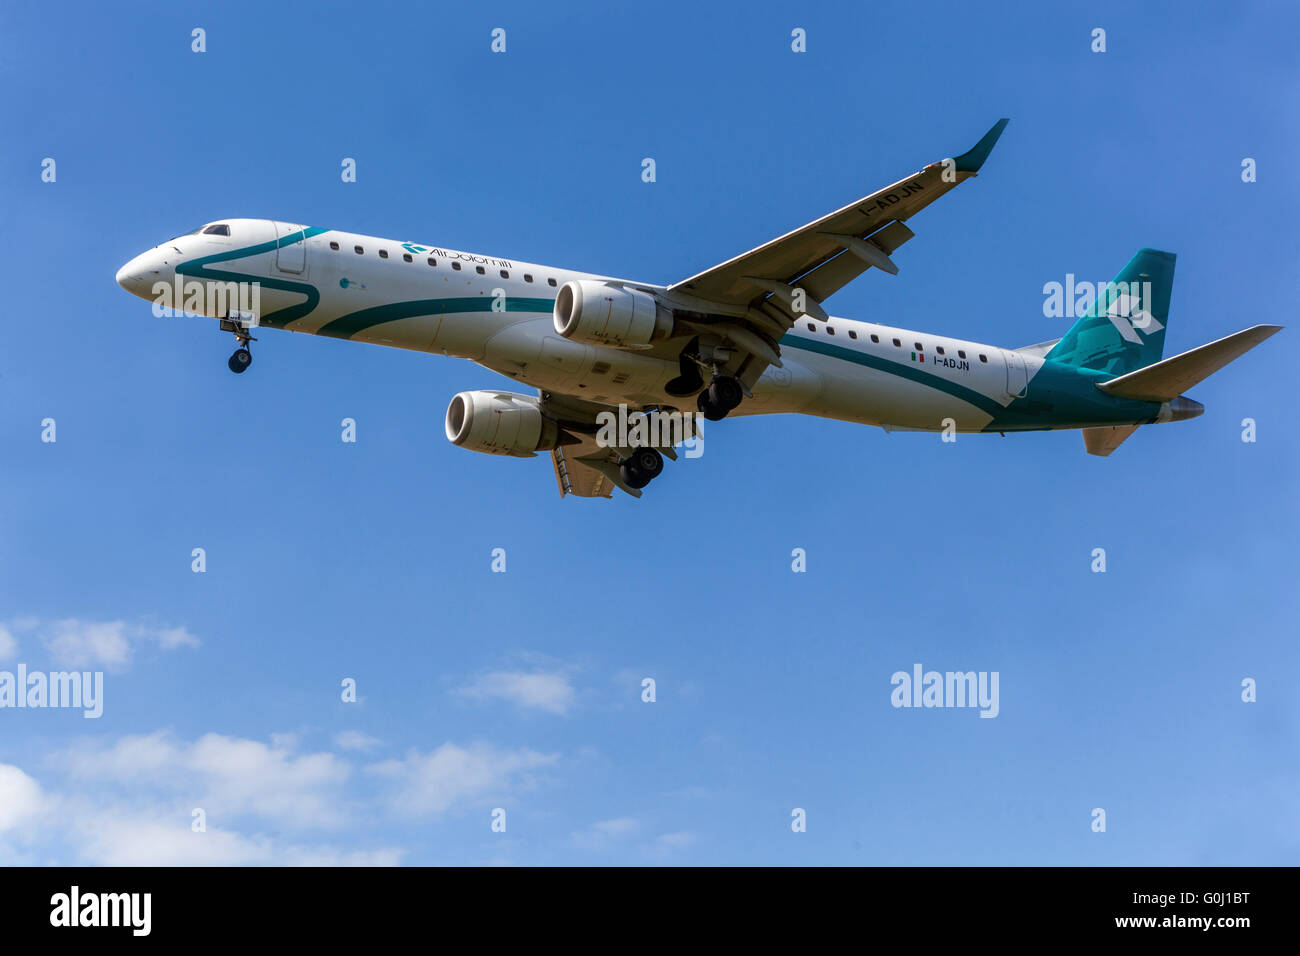 Air Dolomiti, Embraer ERJ-195LR approaches for landing, Prague, Czech Republic - Stock Image